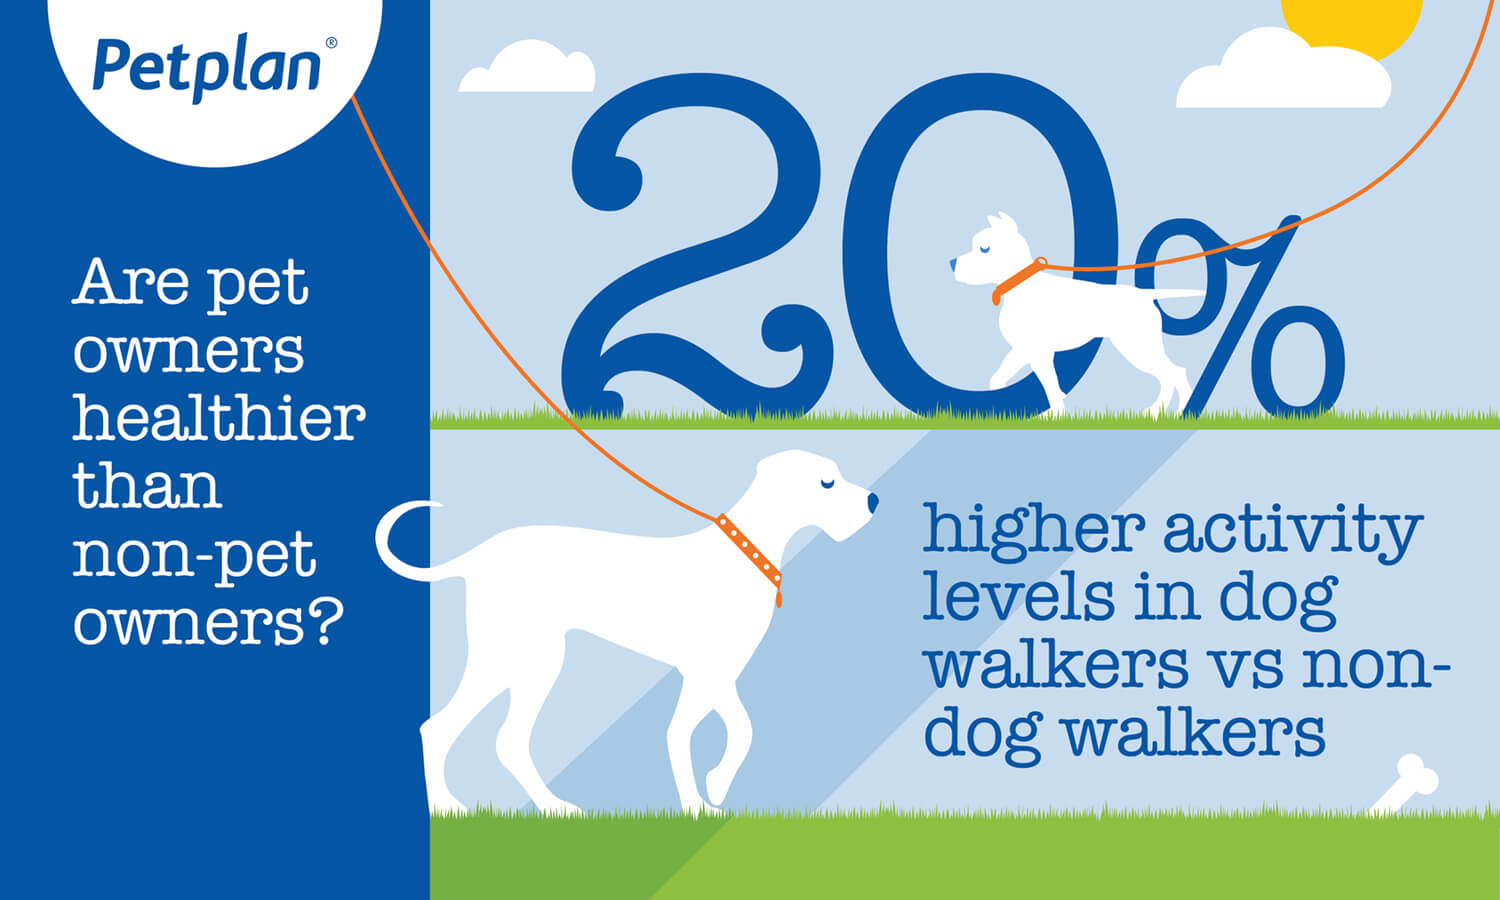 Infographic: 20% higher activity levels in dog walkers vs non-dog walkers img